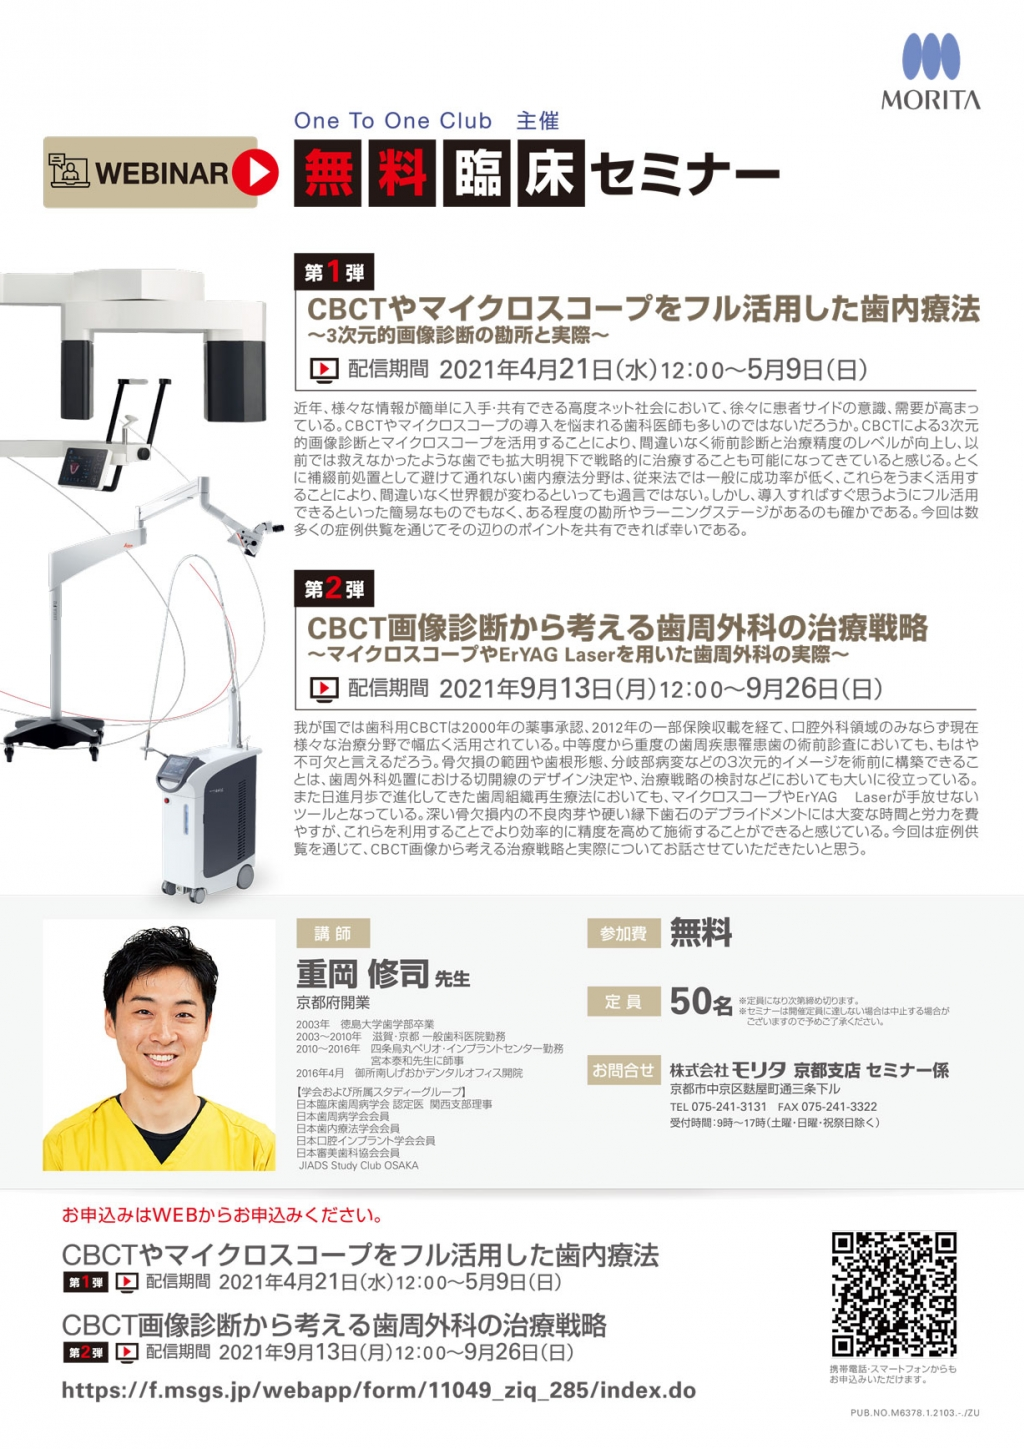 One To One Club 主催 無料臨床セミナーの画像です